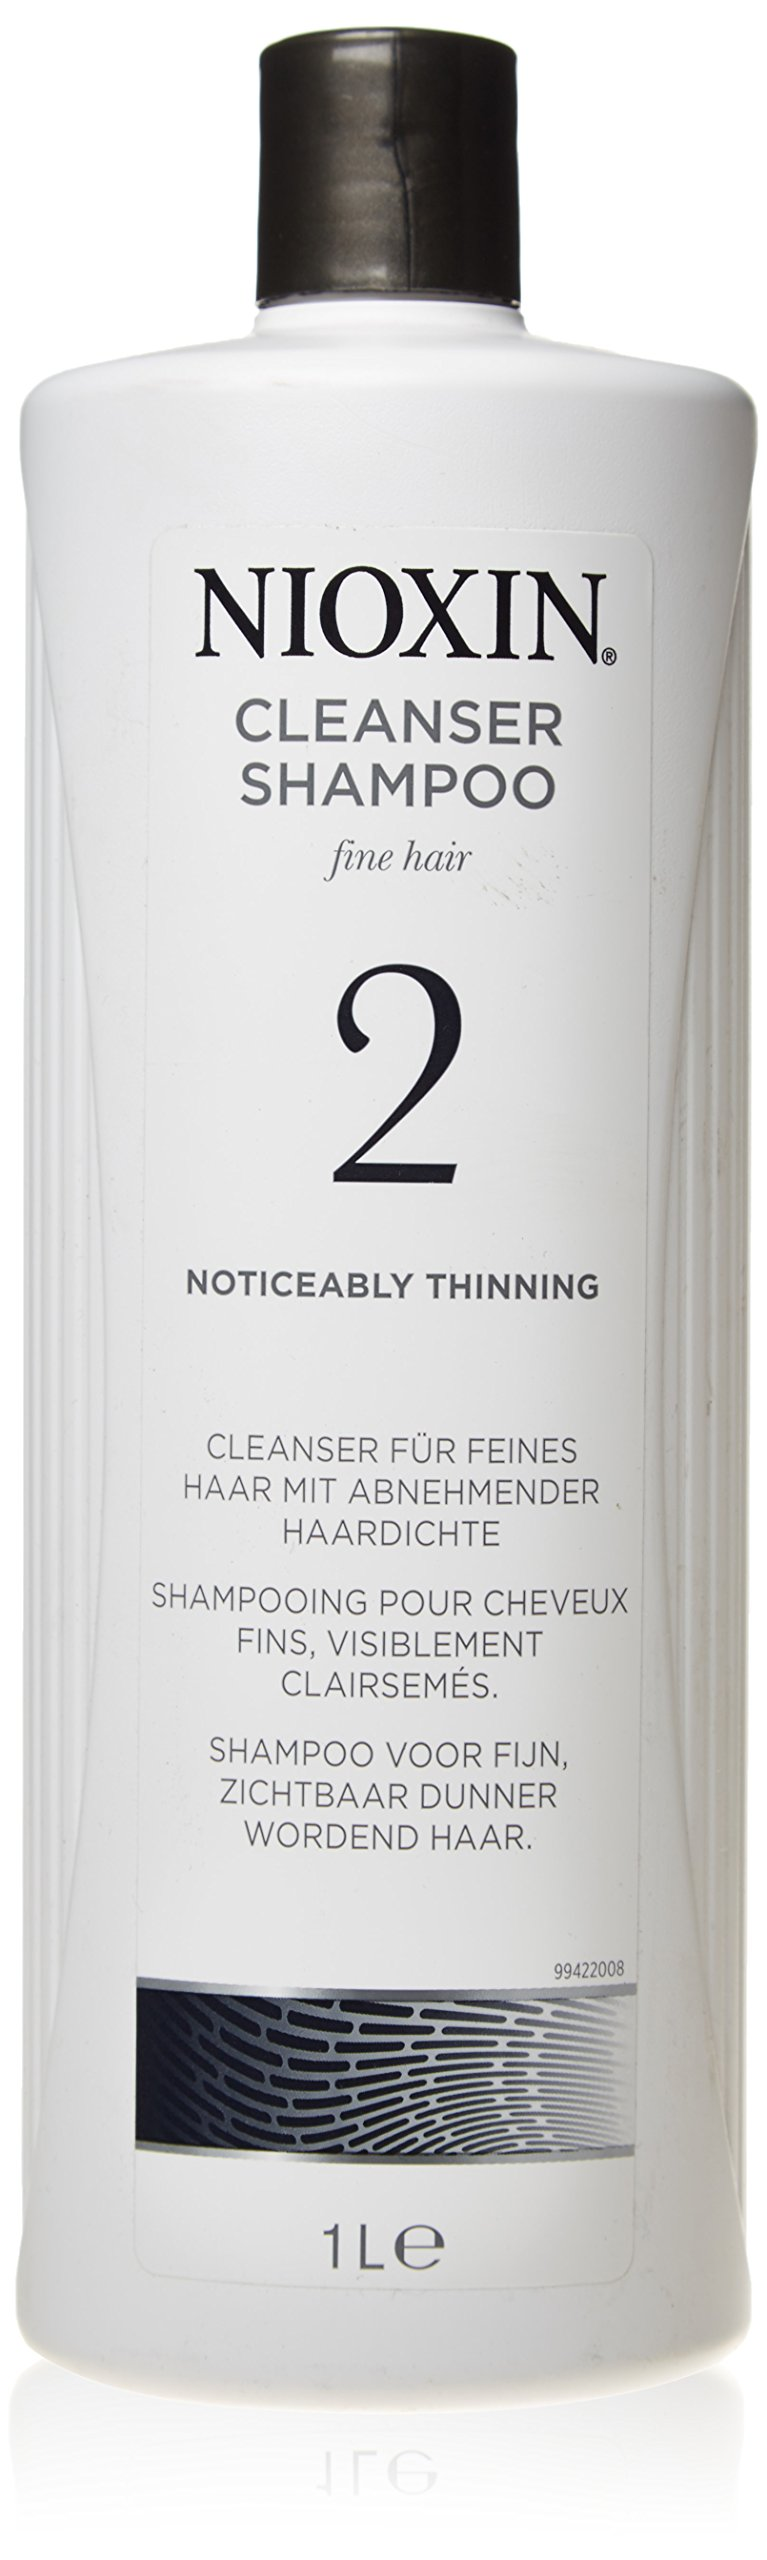 Nioxin System 2 Cleanser Champú - 1000 ml product image